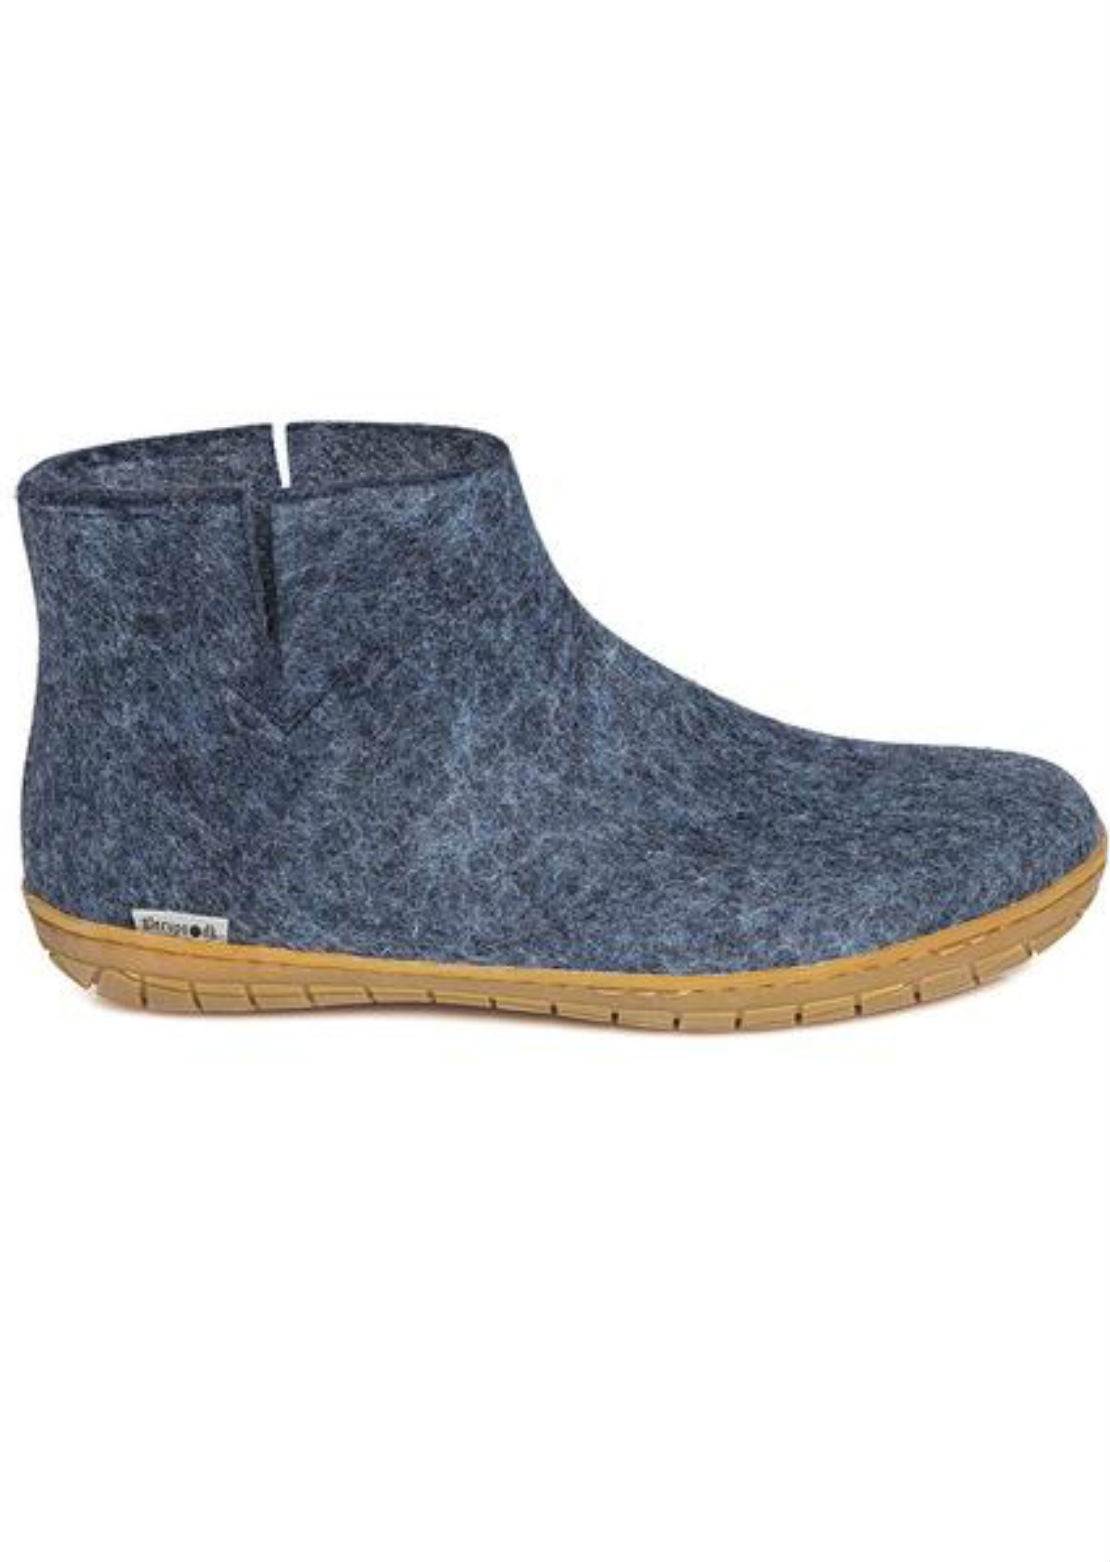 Glerups Unisex Natural Rubber Slipper Boots